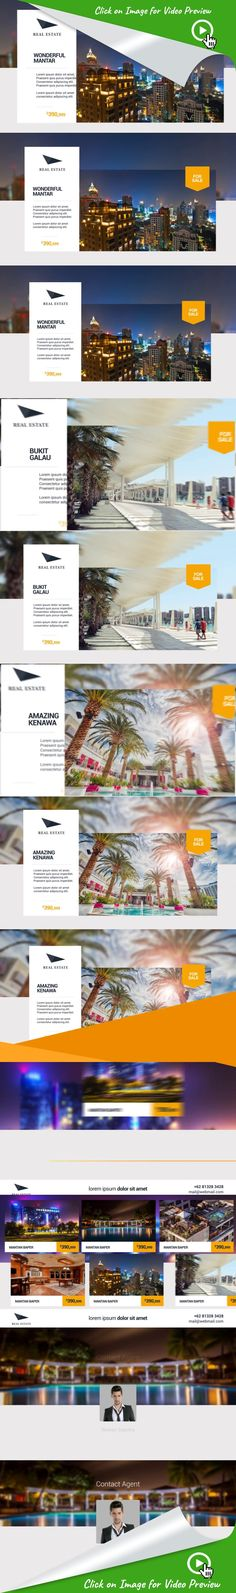 beach, hotel, house, opener, promo, real estate, residence, travel, villa, after effects templates, after effects ideas, after effects intro, after effects intro, after effects motion graphics, intro ideas youtube, after effects projects, videohive projects  Another Real Estate Template    Free Customize  Extend the Duration Duplicate Scene   Description  Resolutions: Full HD 1920×1080 No Plugin Required Video Tutorial Included Easy to change text and color Font Used: http://www.fontsq...